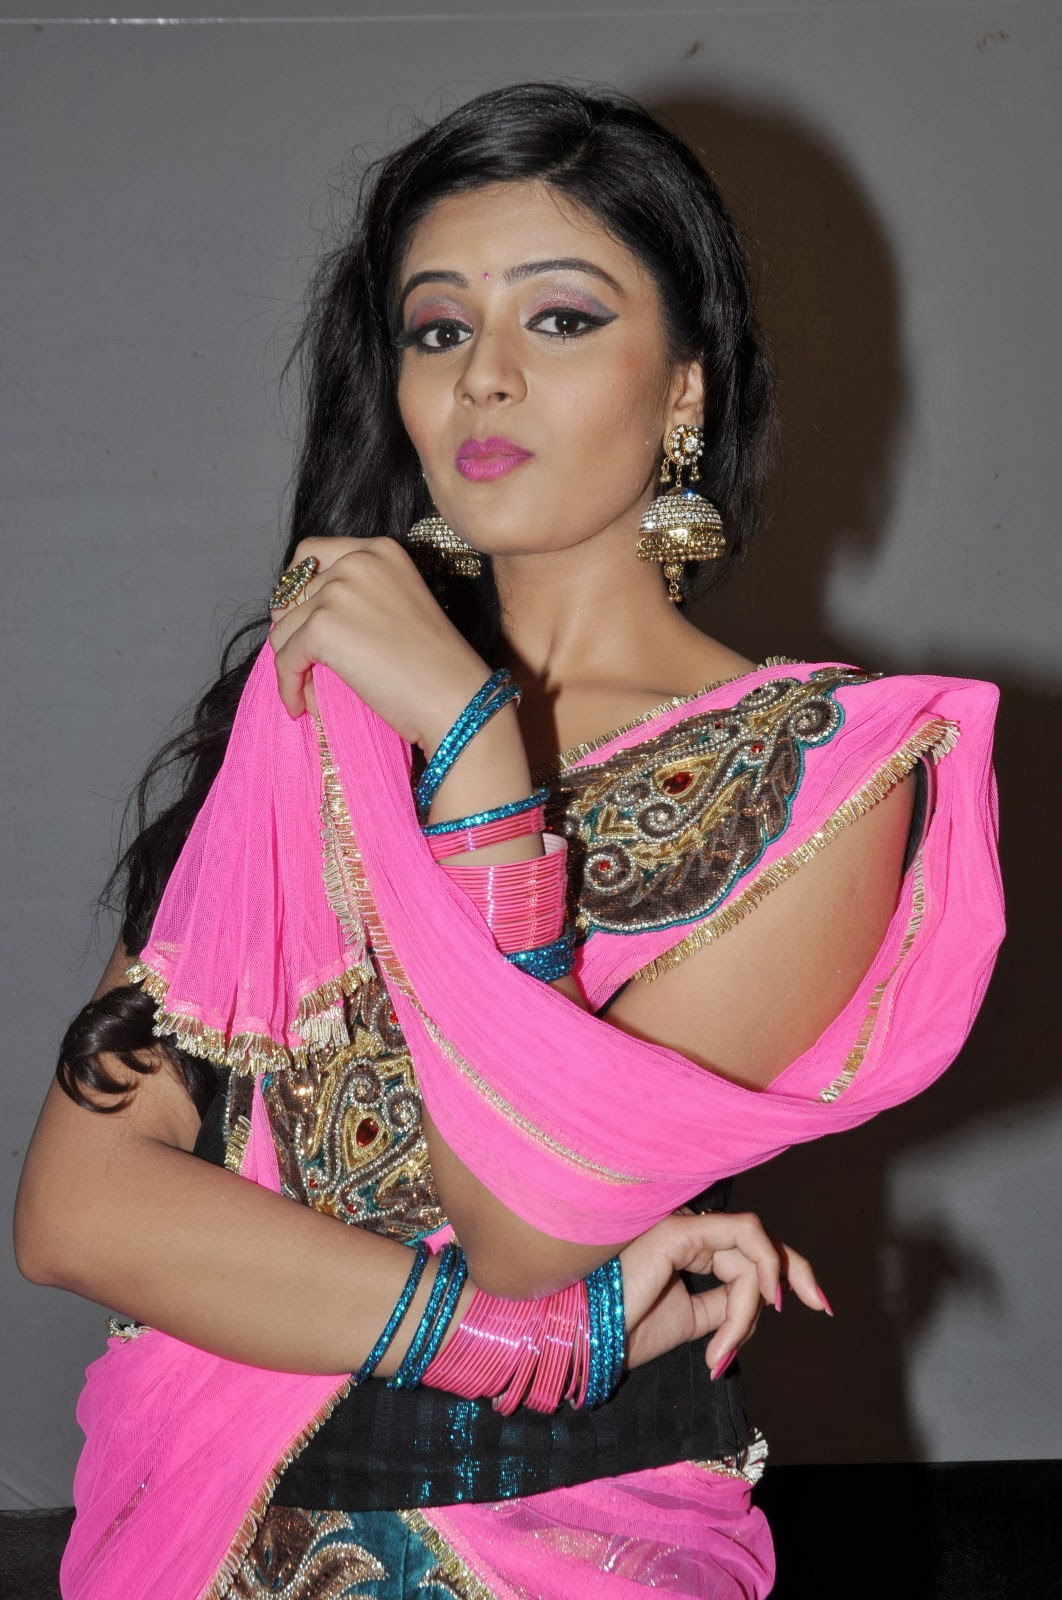 Glamrous and sexy Sreemukhi photos in ethnic pink lengha